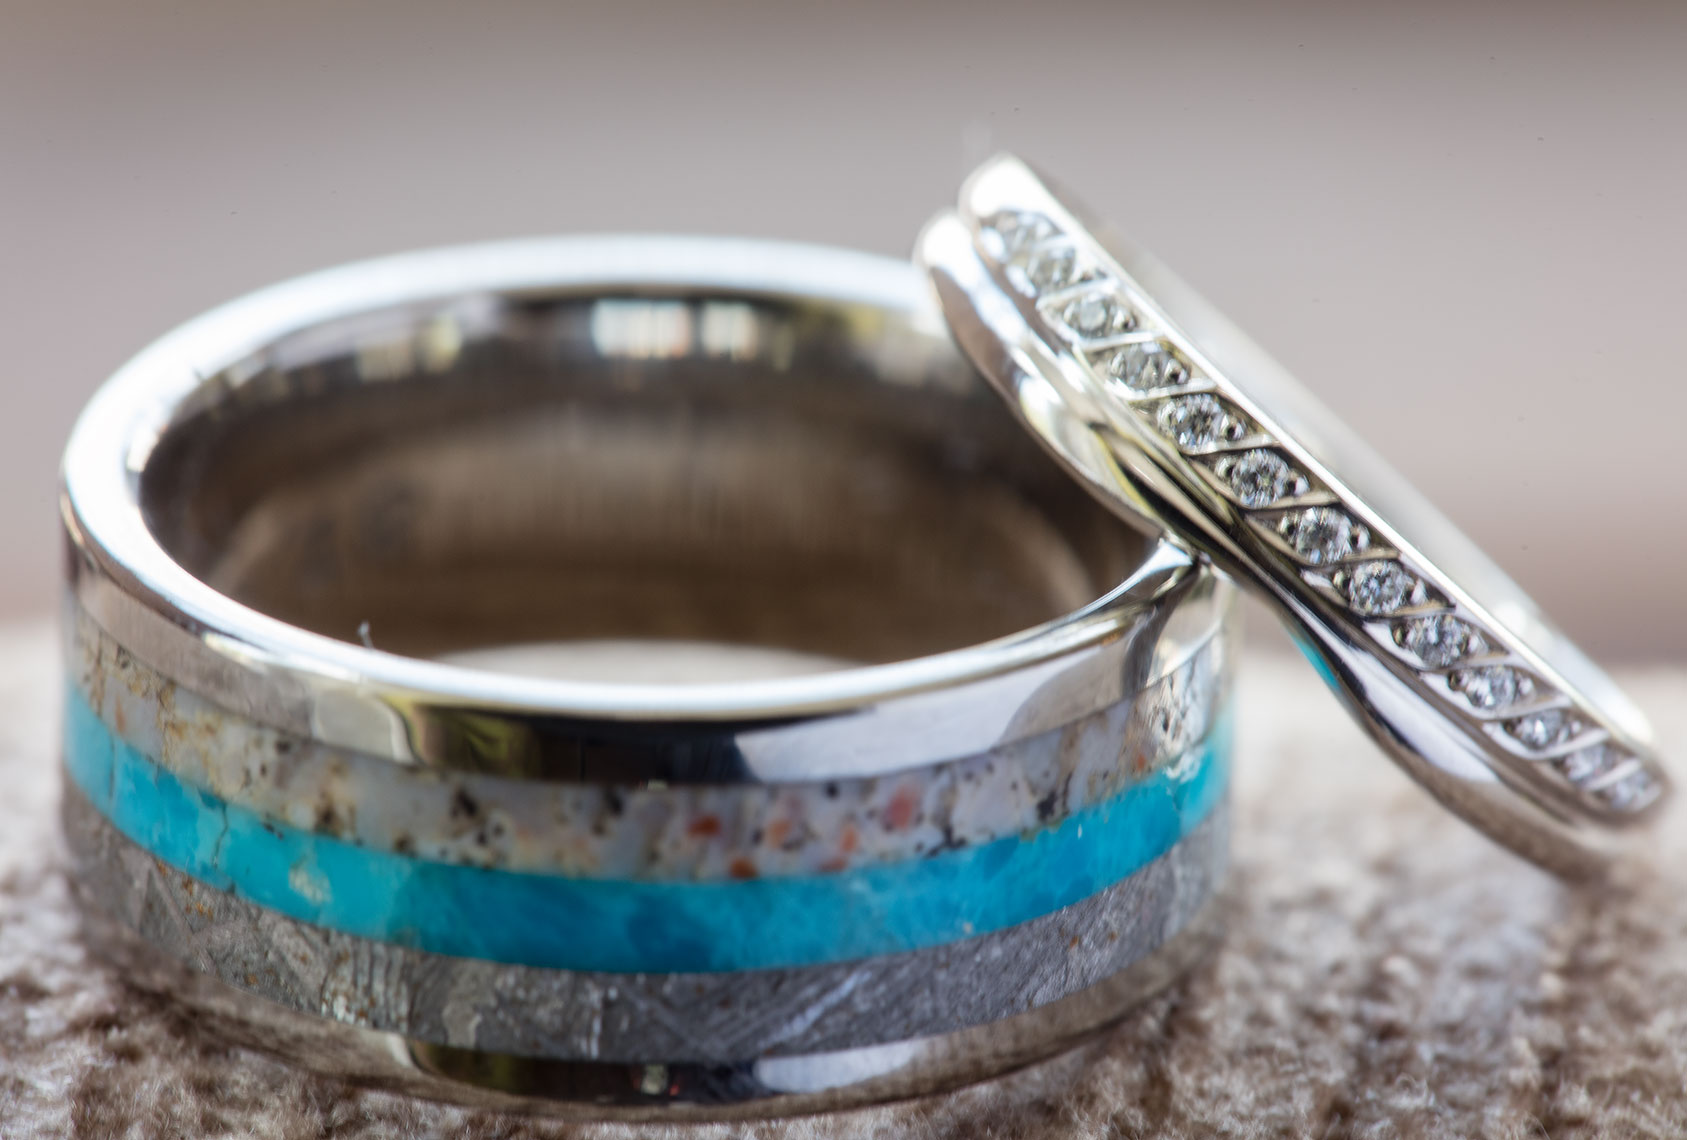 Silver and turquoise wedding ring shimmering in window light